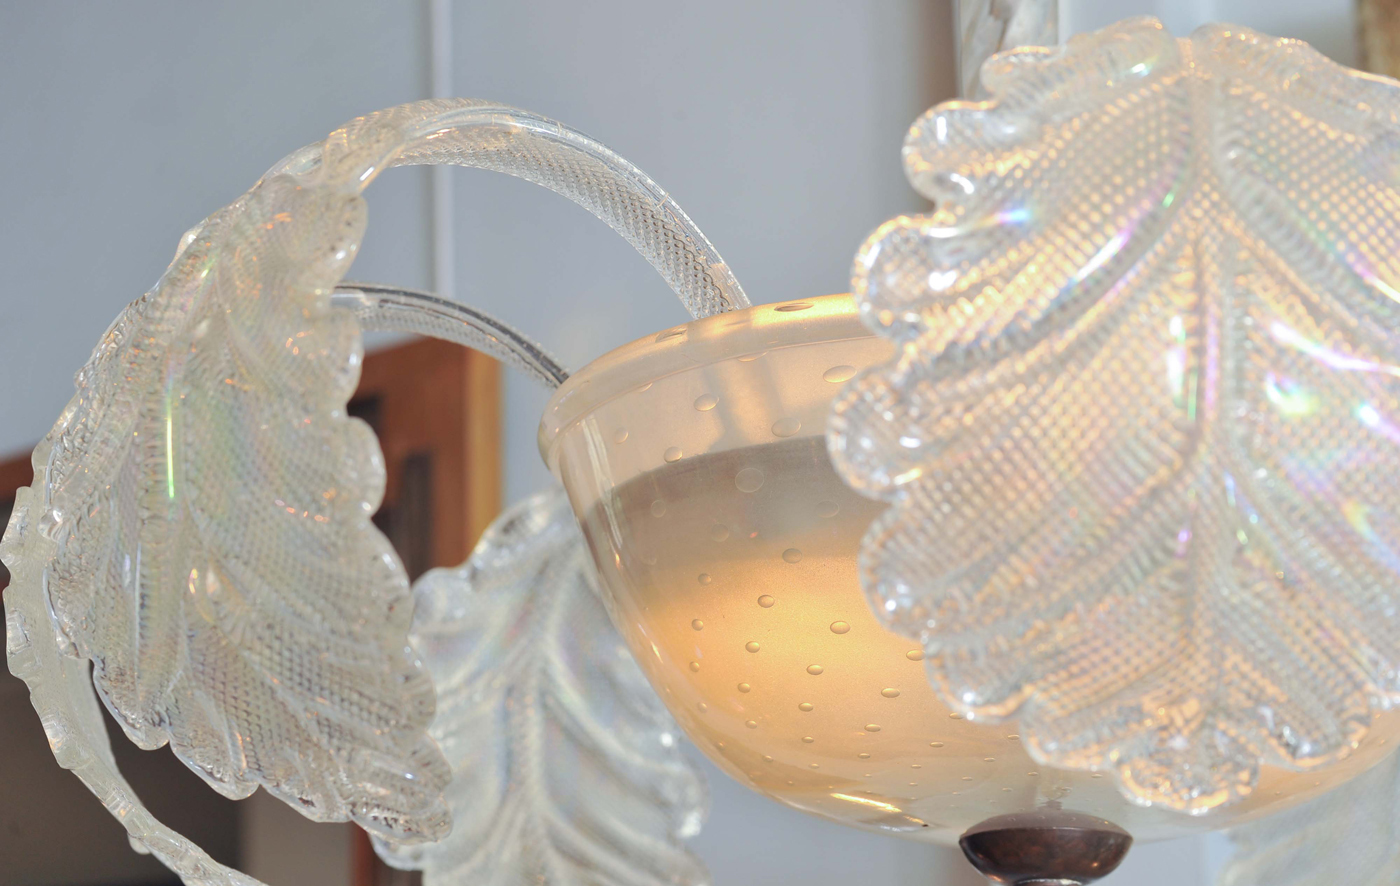 Valerie Wade Lc580 1950S Glass Chandelier Barovier E Toso 02